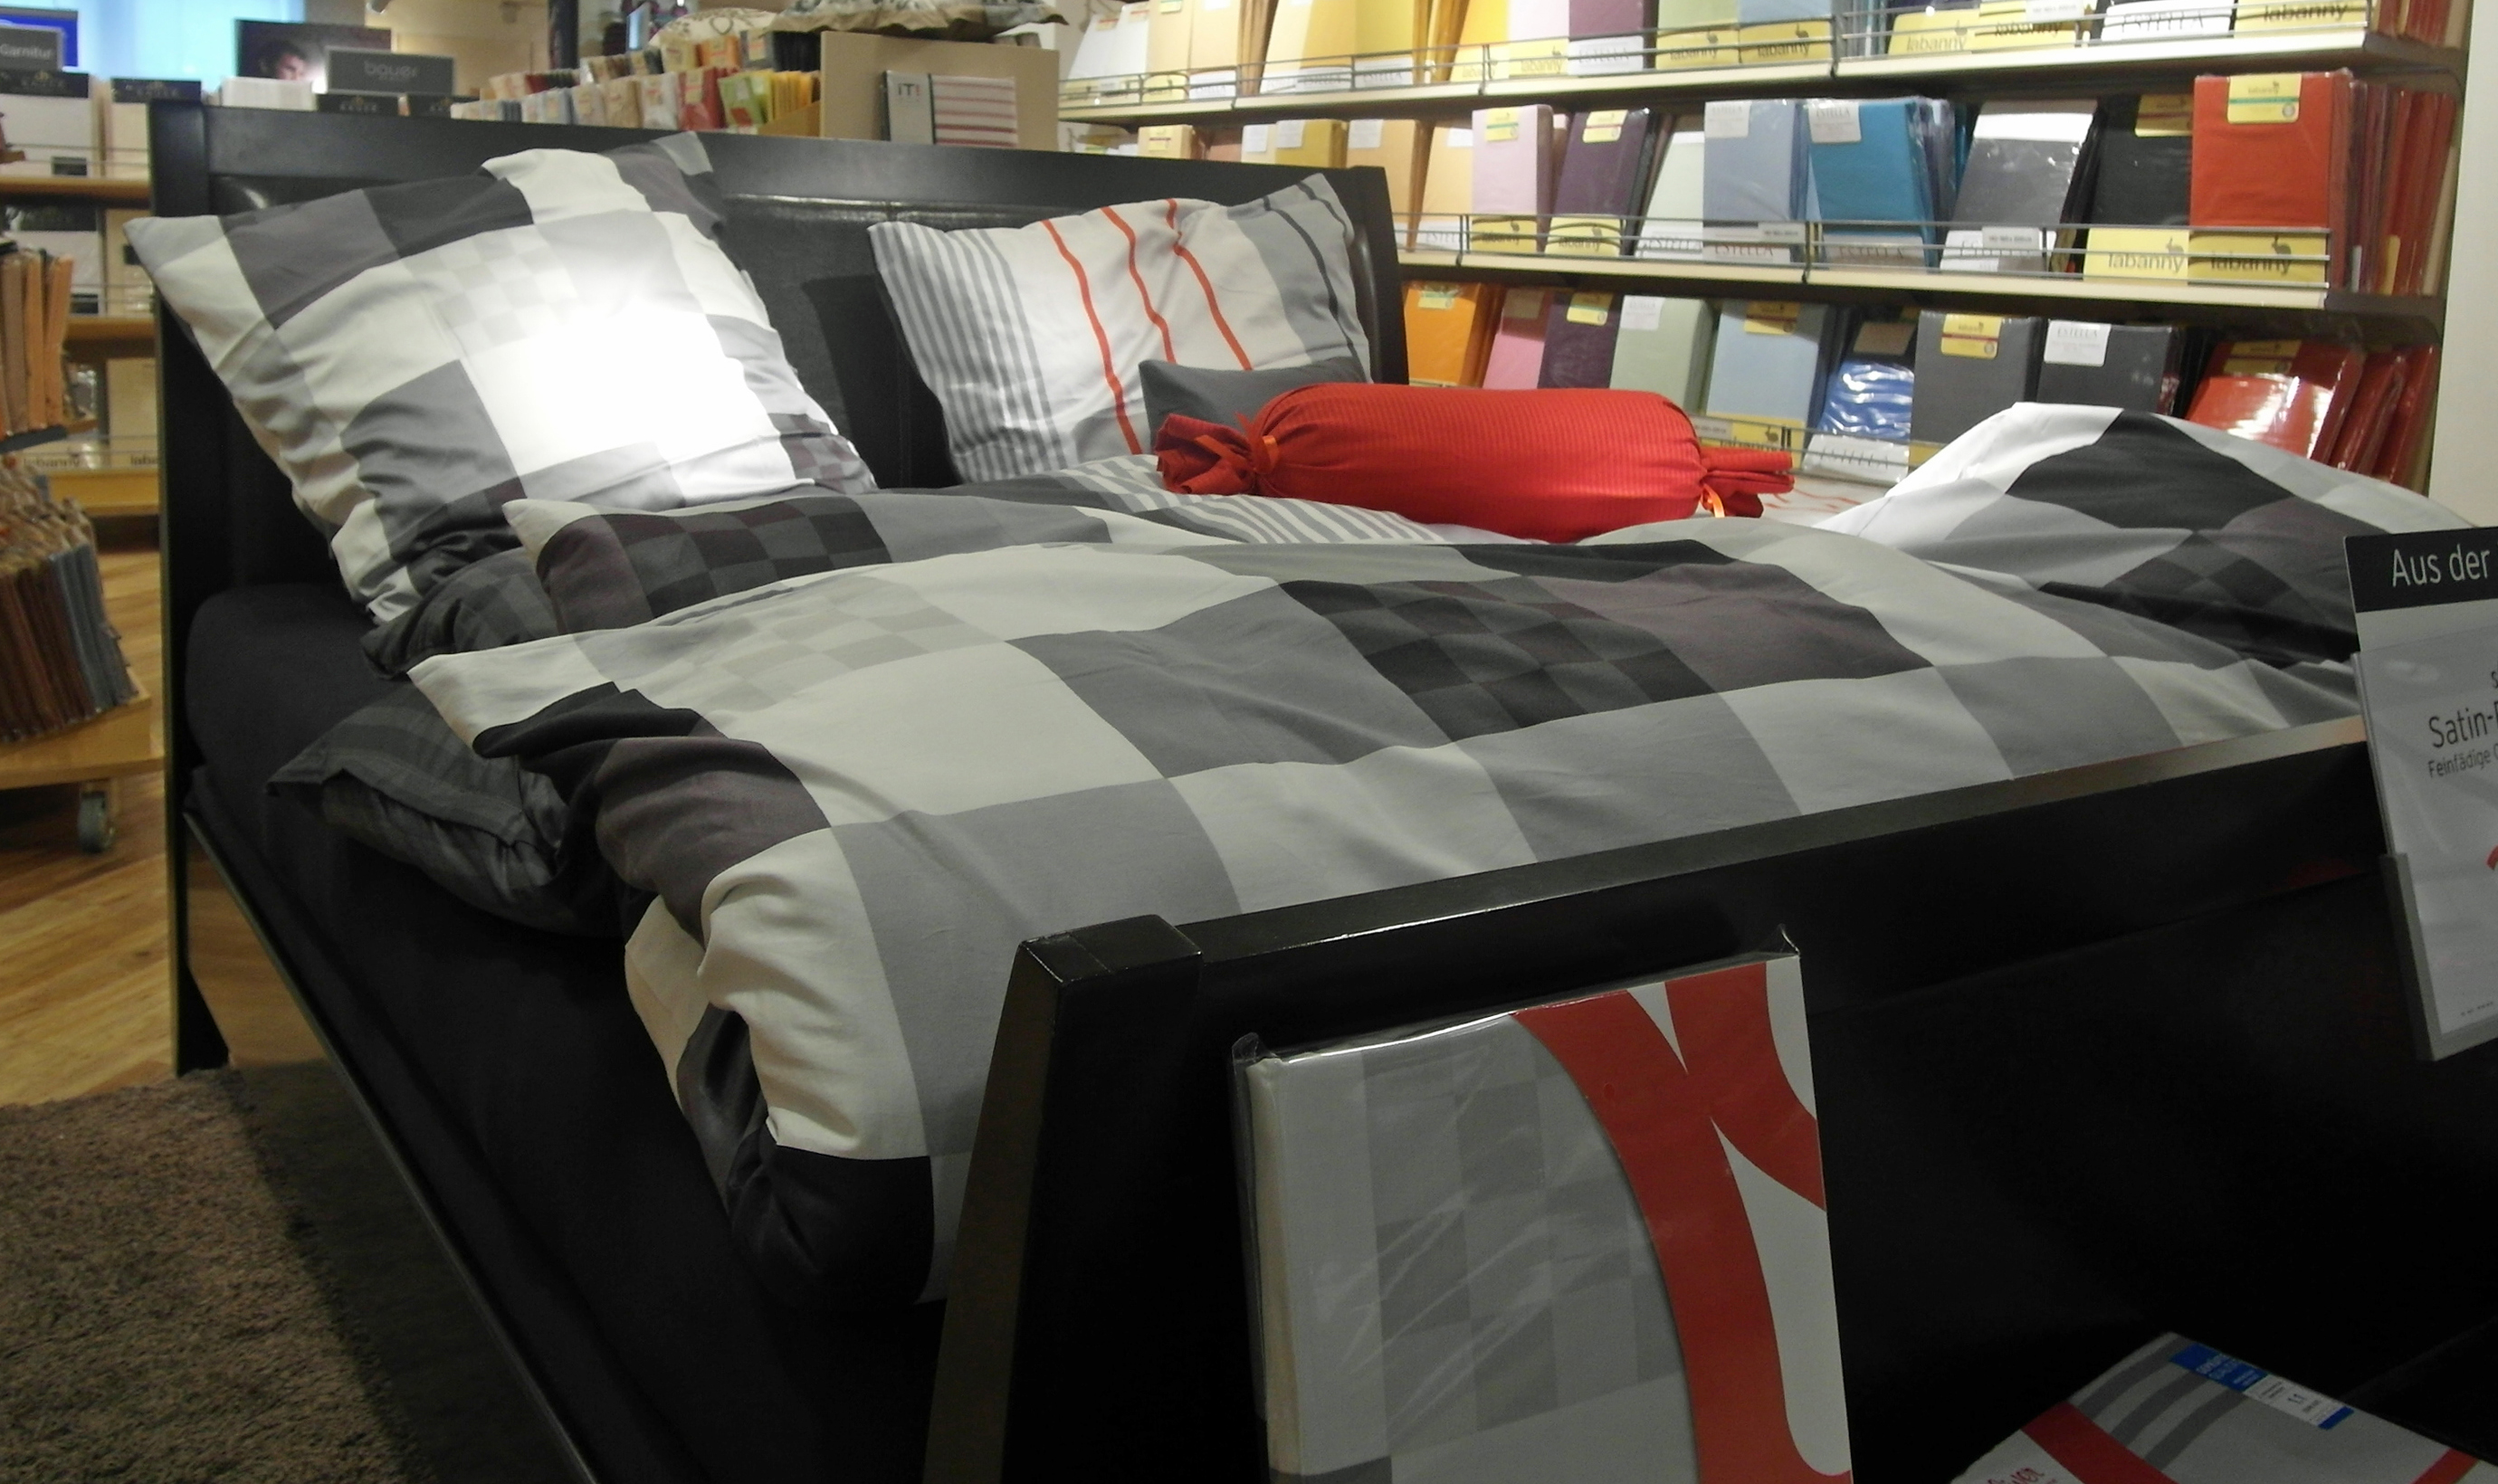 hochwertige bettwaren zu schn ppchenpreisen outlet und fabrikverkauf in deutschland. Black Bedroom Furniture Sets. Home Design Ideas